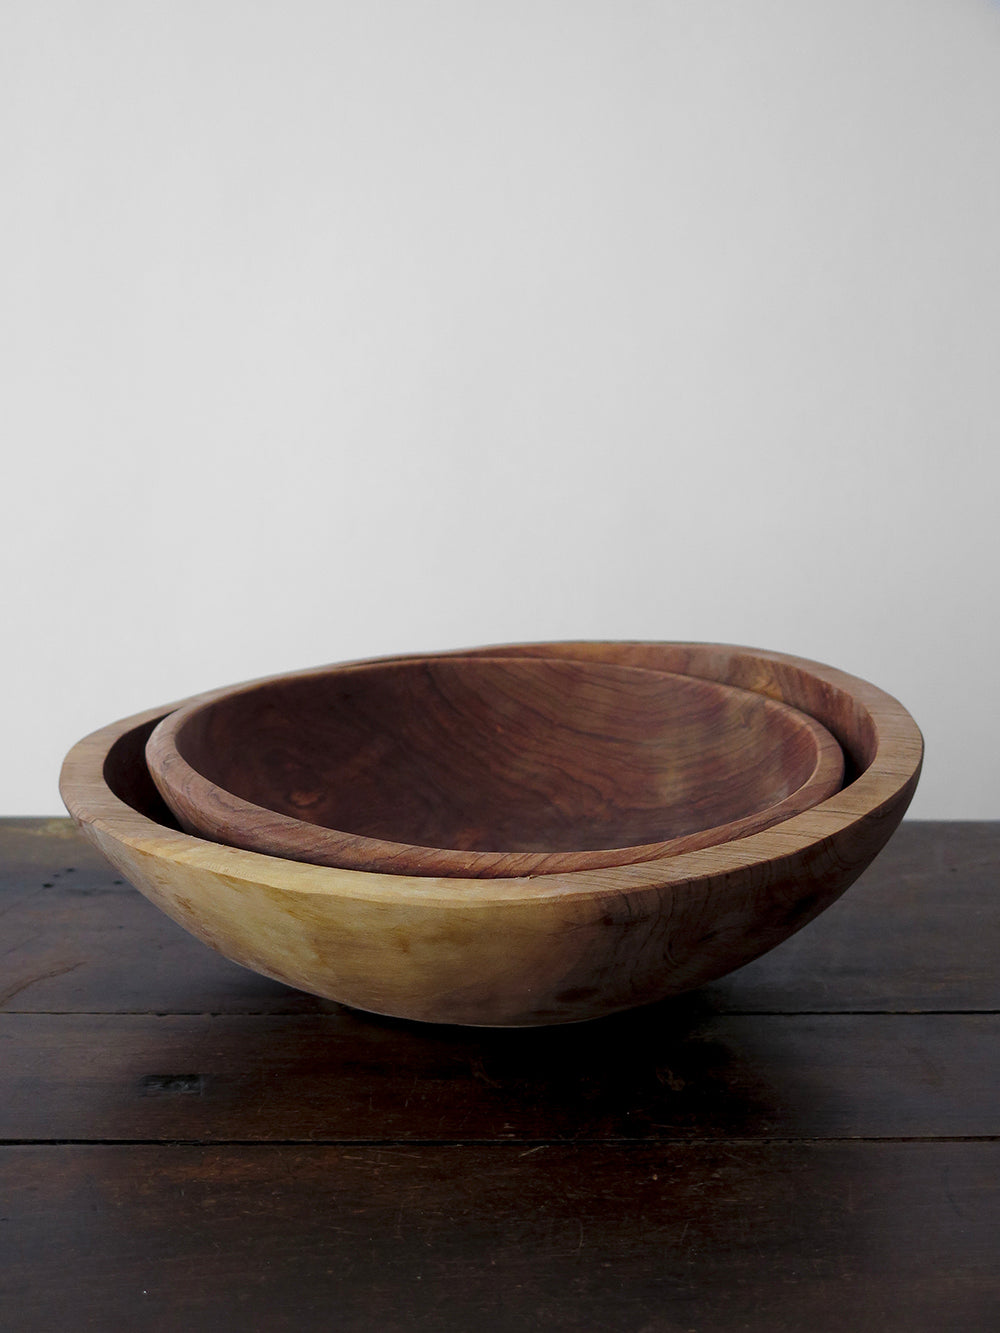 swahili imports medium olivewood bowl